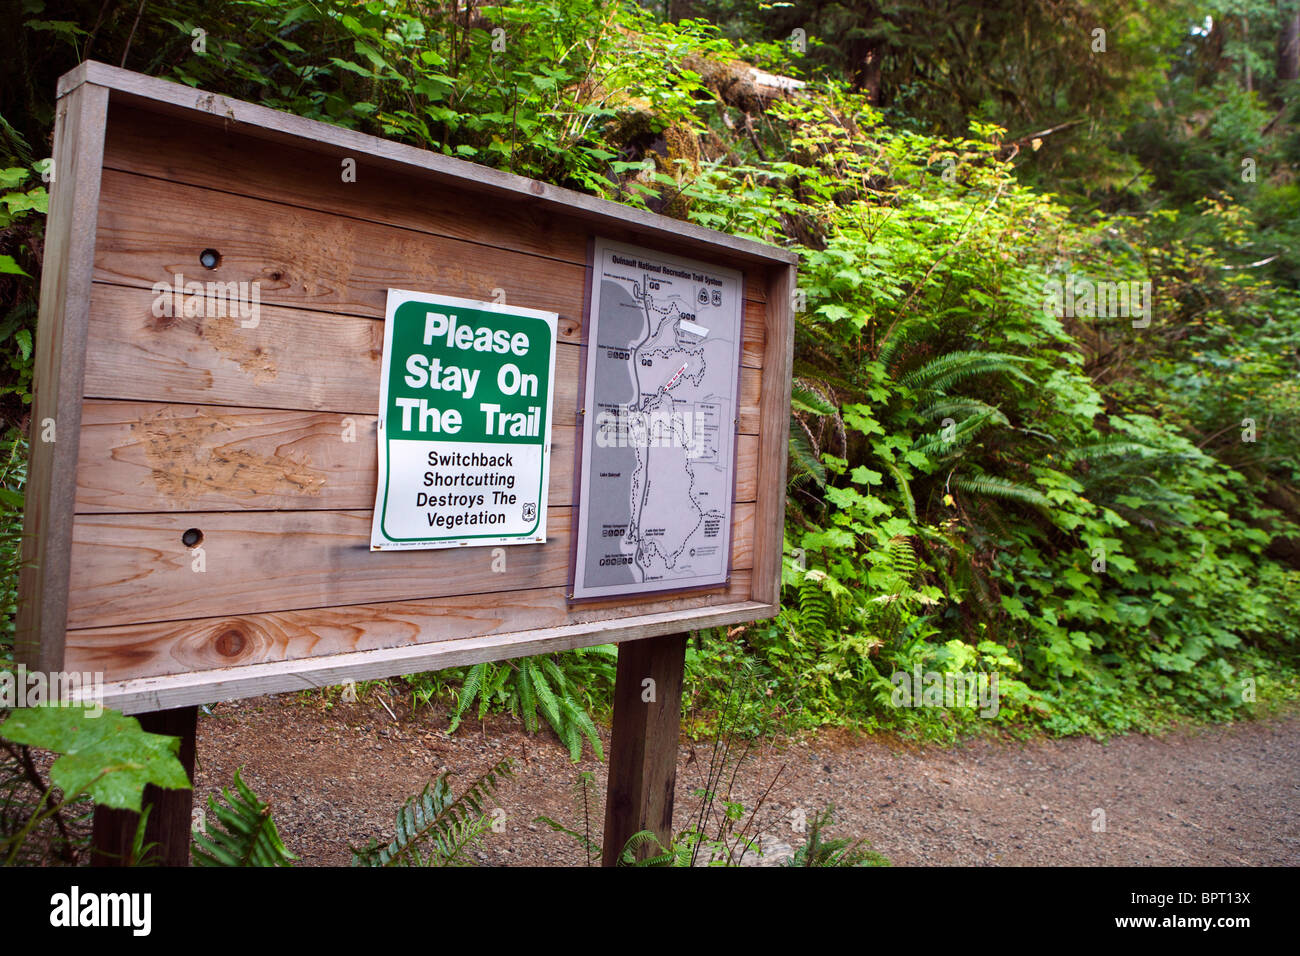 US Forest Service Bulletin Board With Trail Maps And Warning To - Us forest service maps